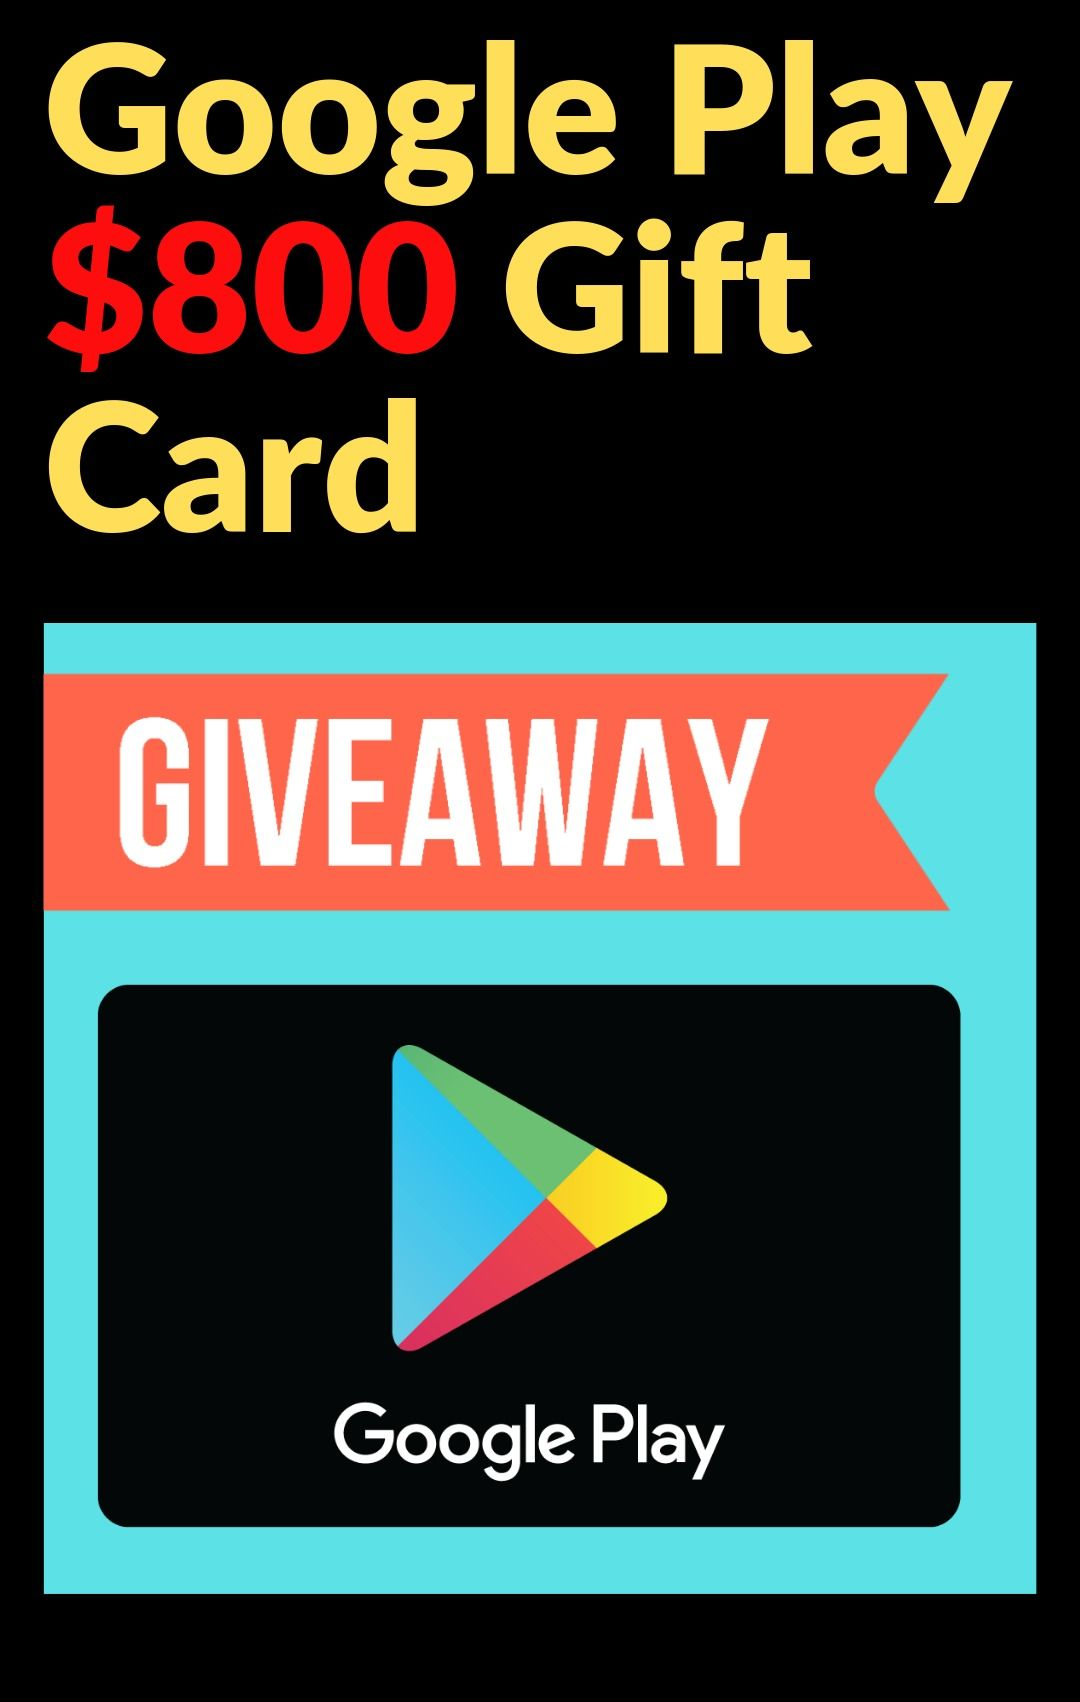 Win Google Play Gift Card Googleplaygiftcard